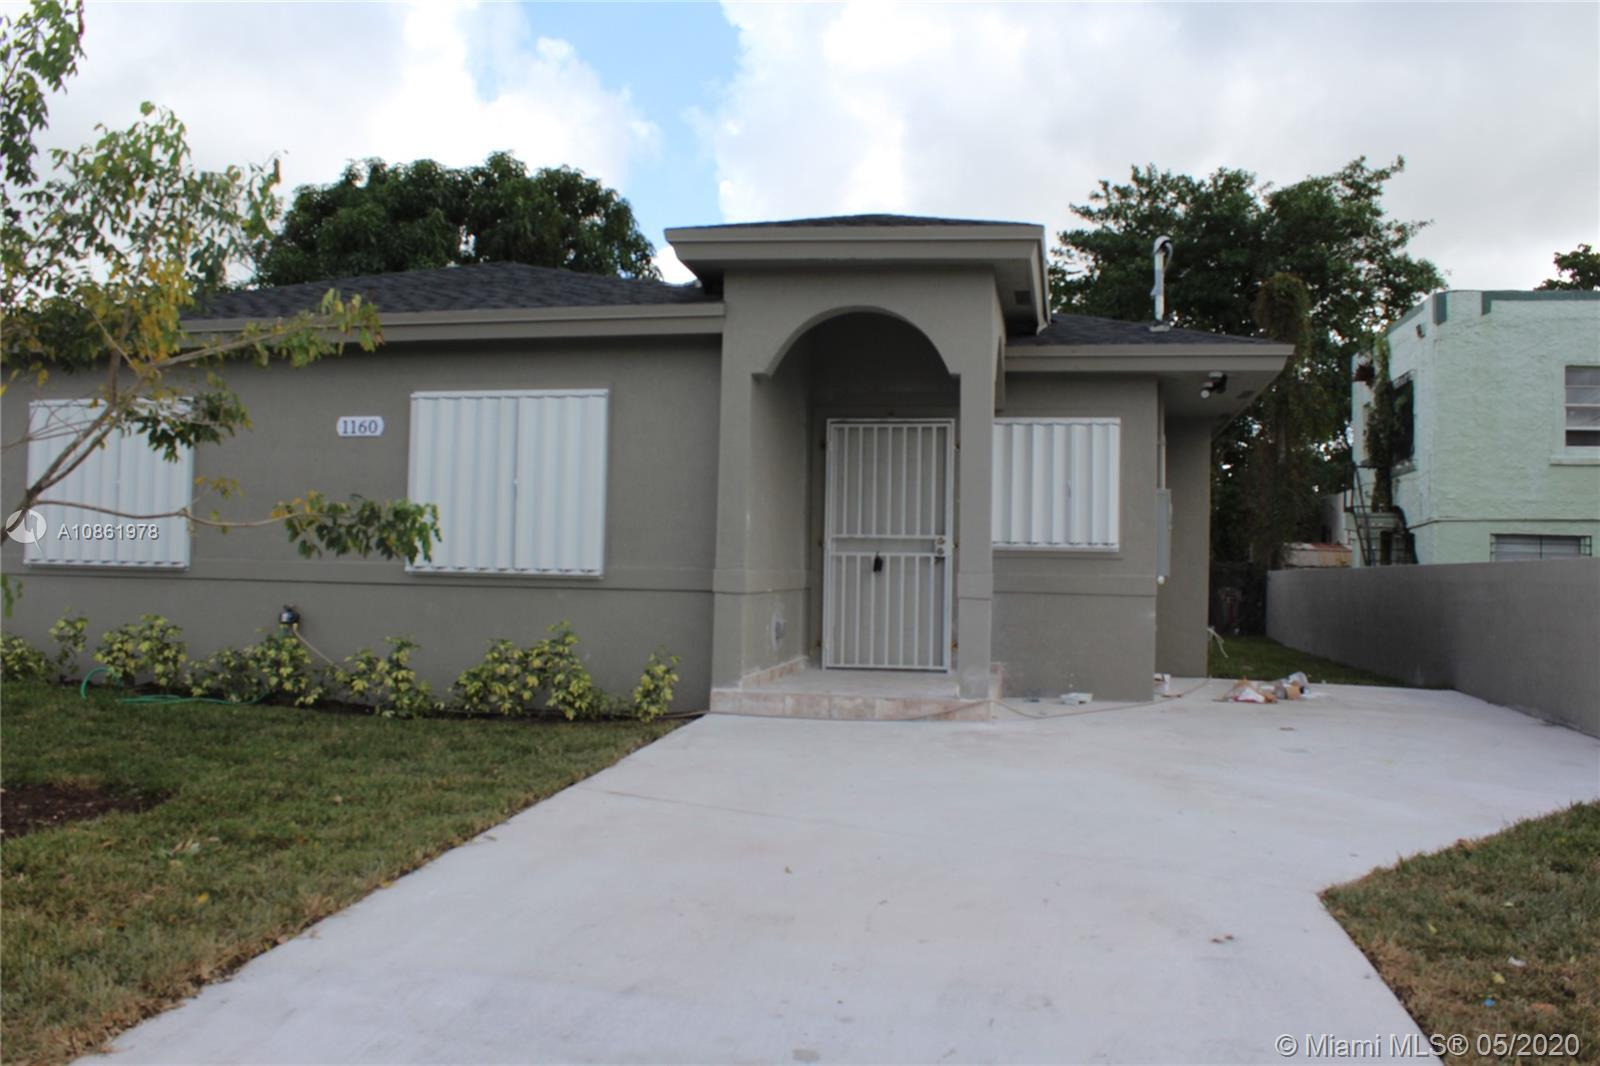 NEW CONSTRUCTION 4 BEDROOM 2 BATH. 1489 SQFT UNDER A/C. LOTS OF UPGRADES. TILED THROUGHOUT,  S/S AP